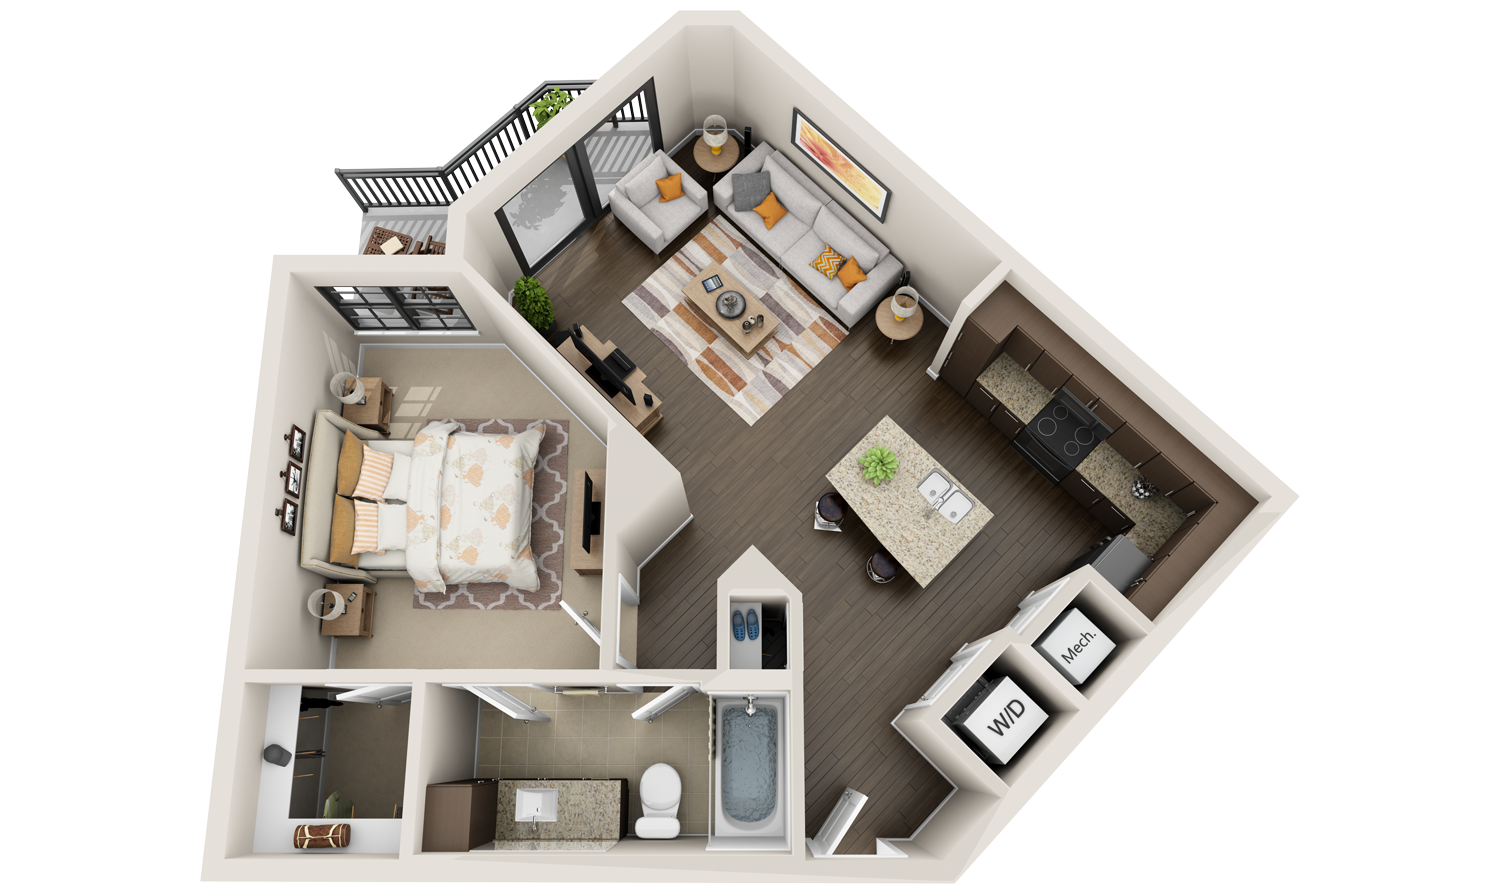 Best 3d floor plans for apartments virtual tours we for 3d bedroom planner